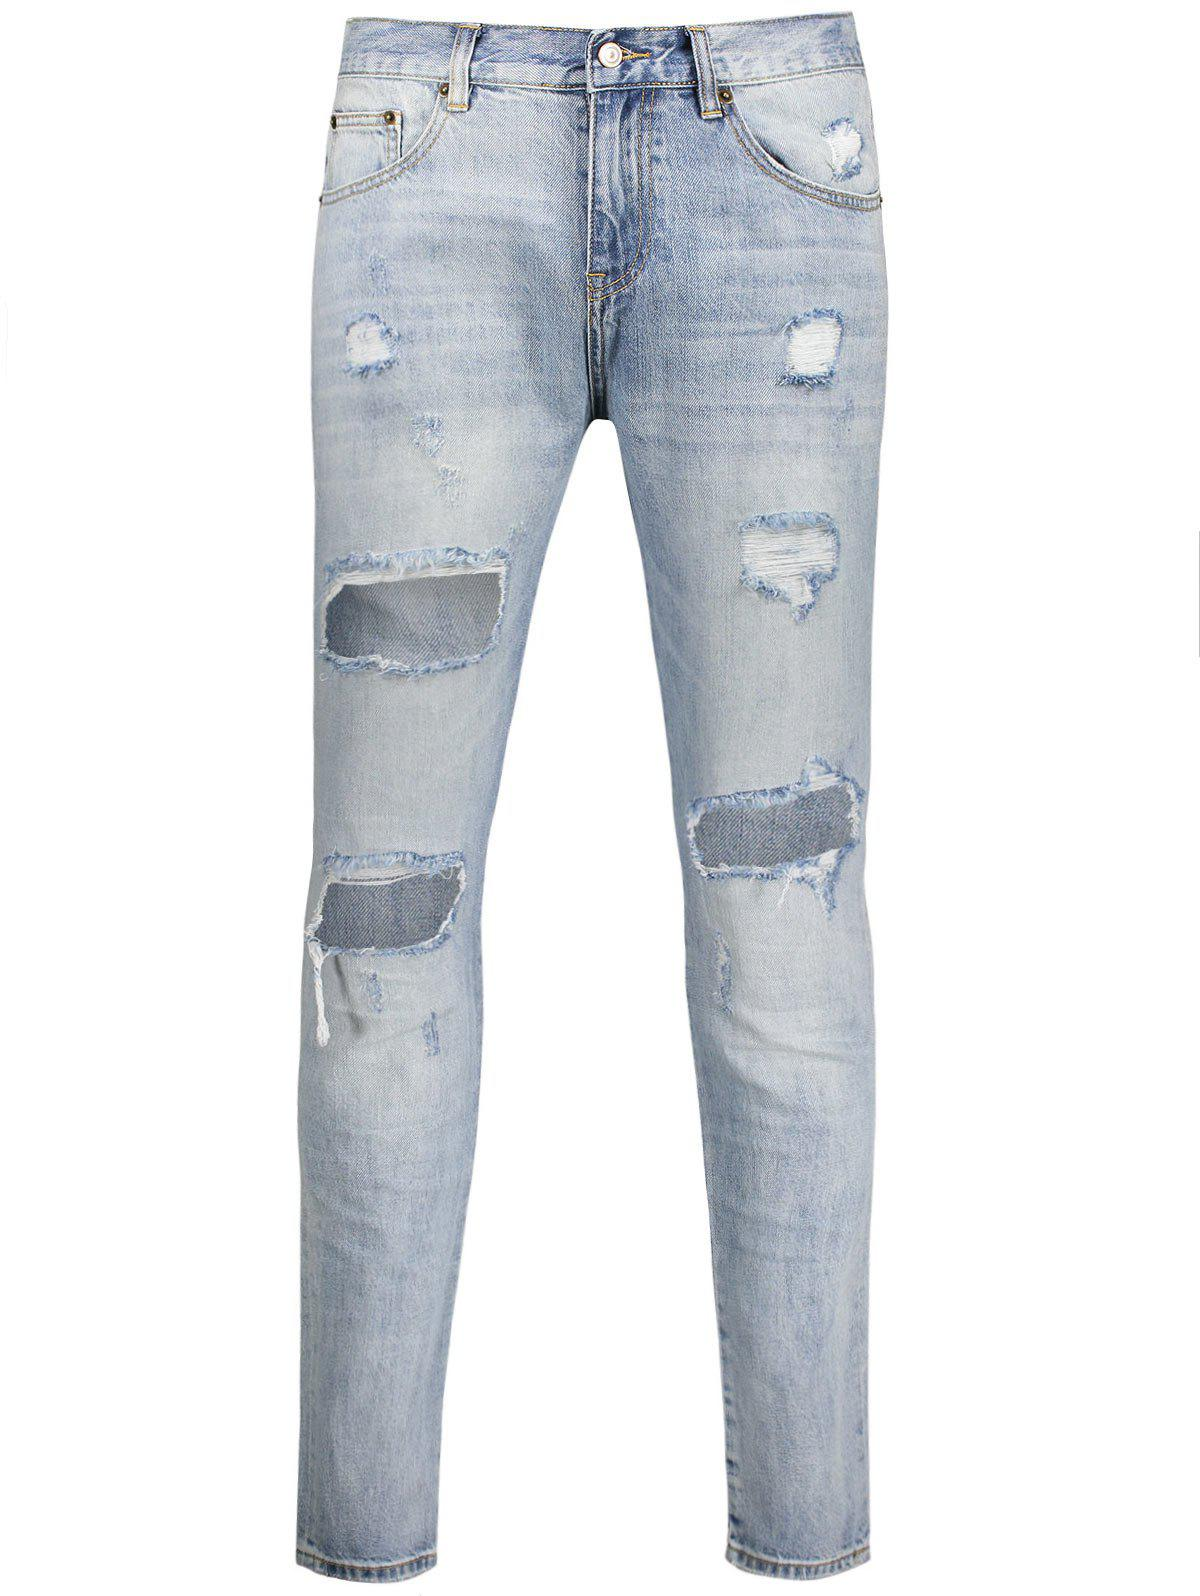 Find the latest Men's Jeans & Pants, Jeans, clothing, fashion & more at DrJays.